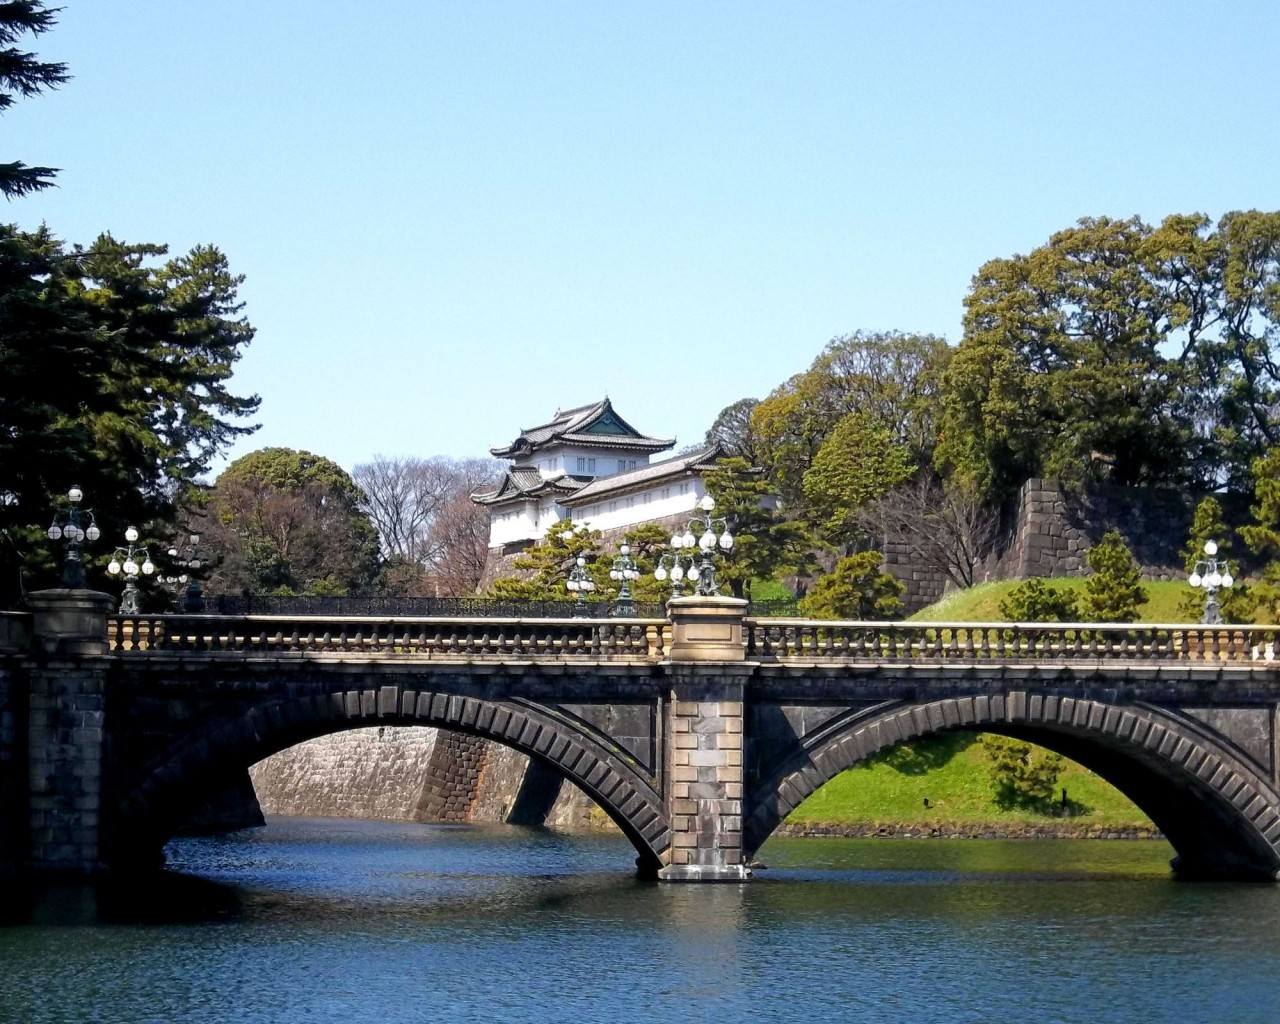 The-Imperial-Palace-Tokyo-Japan-05-1024x1280